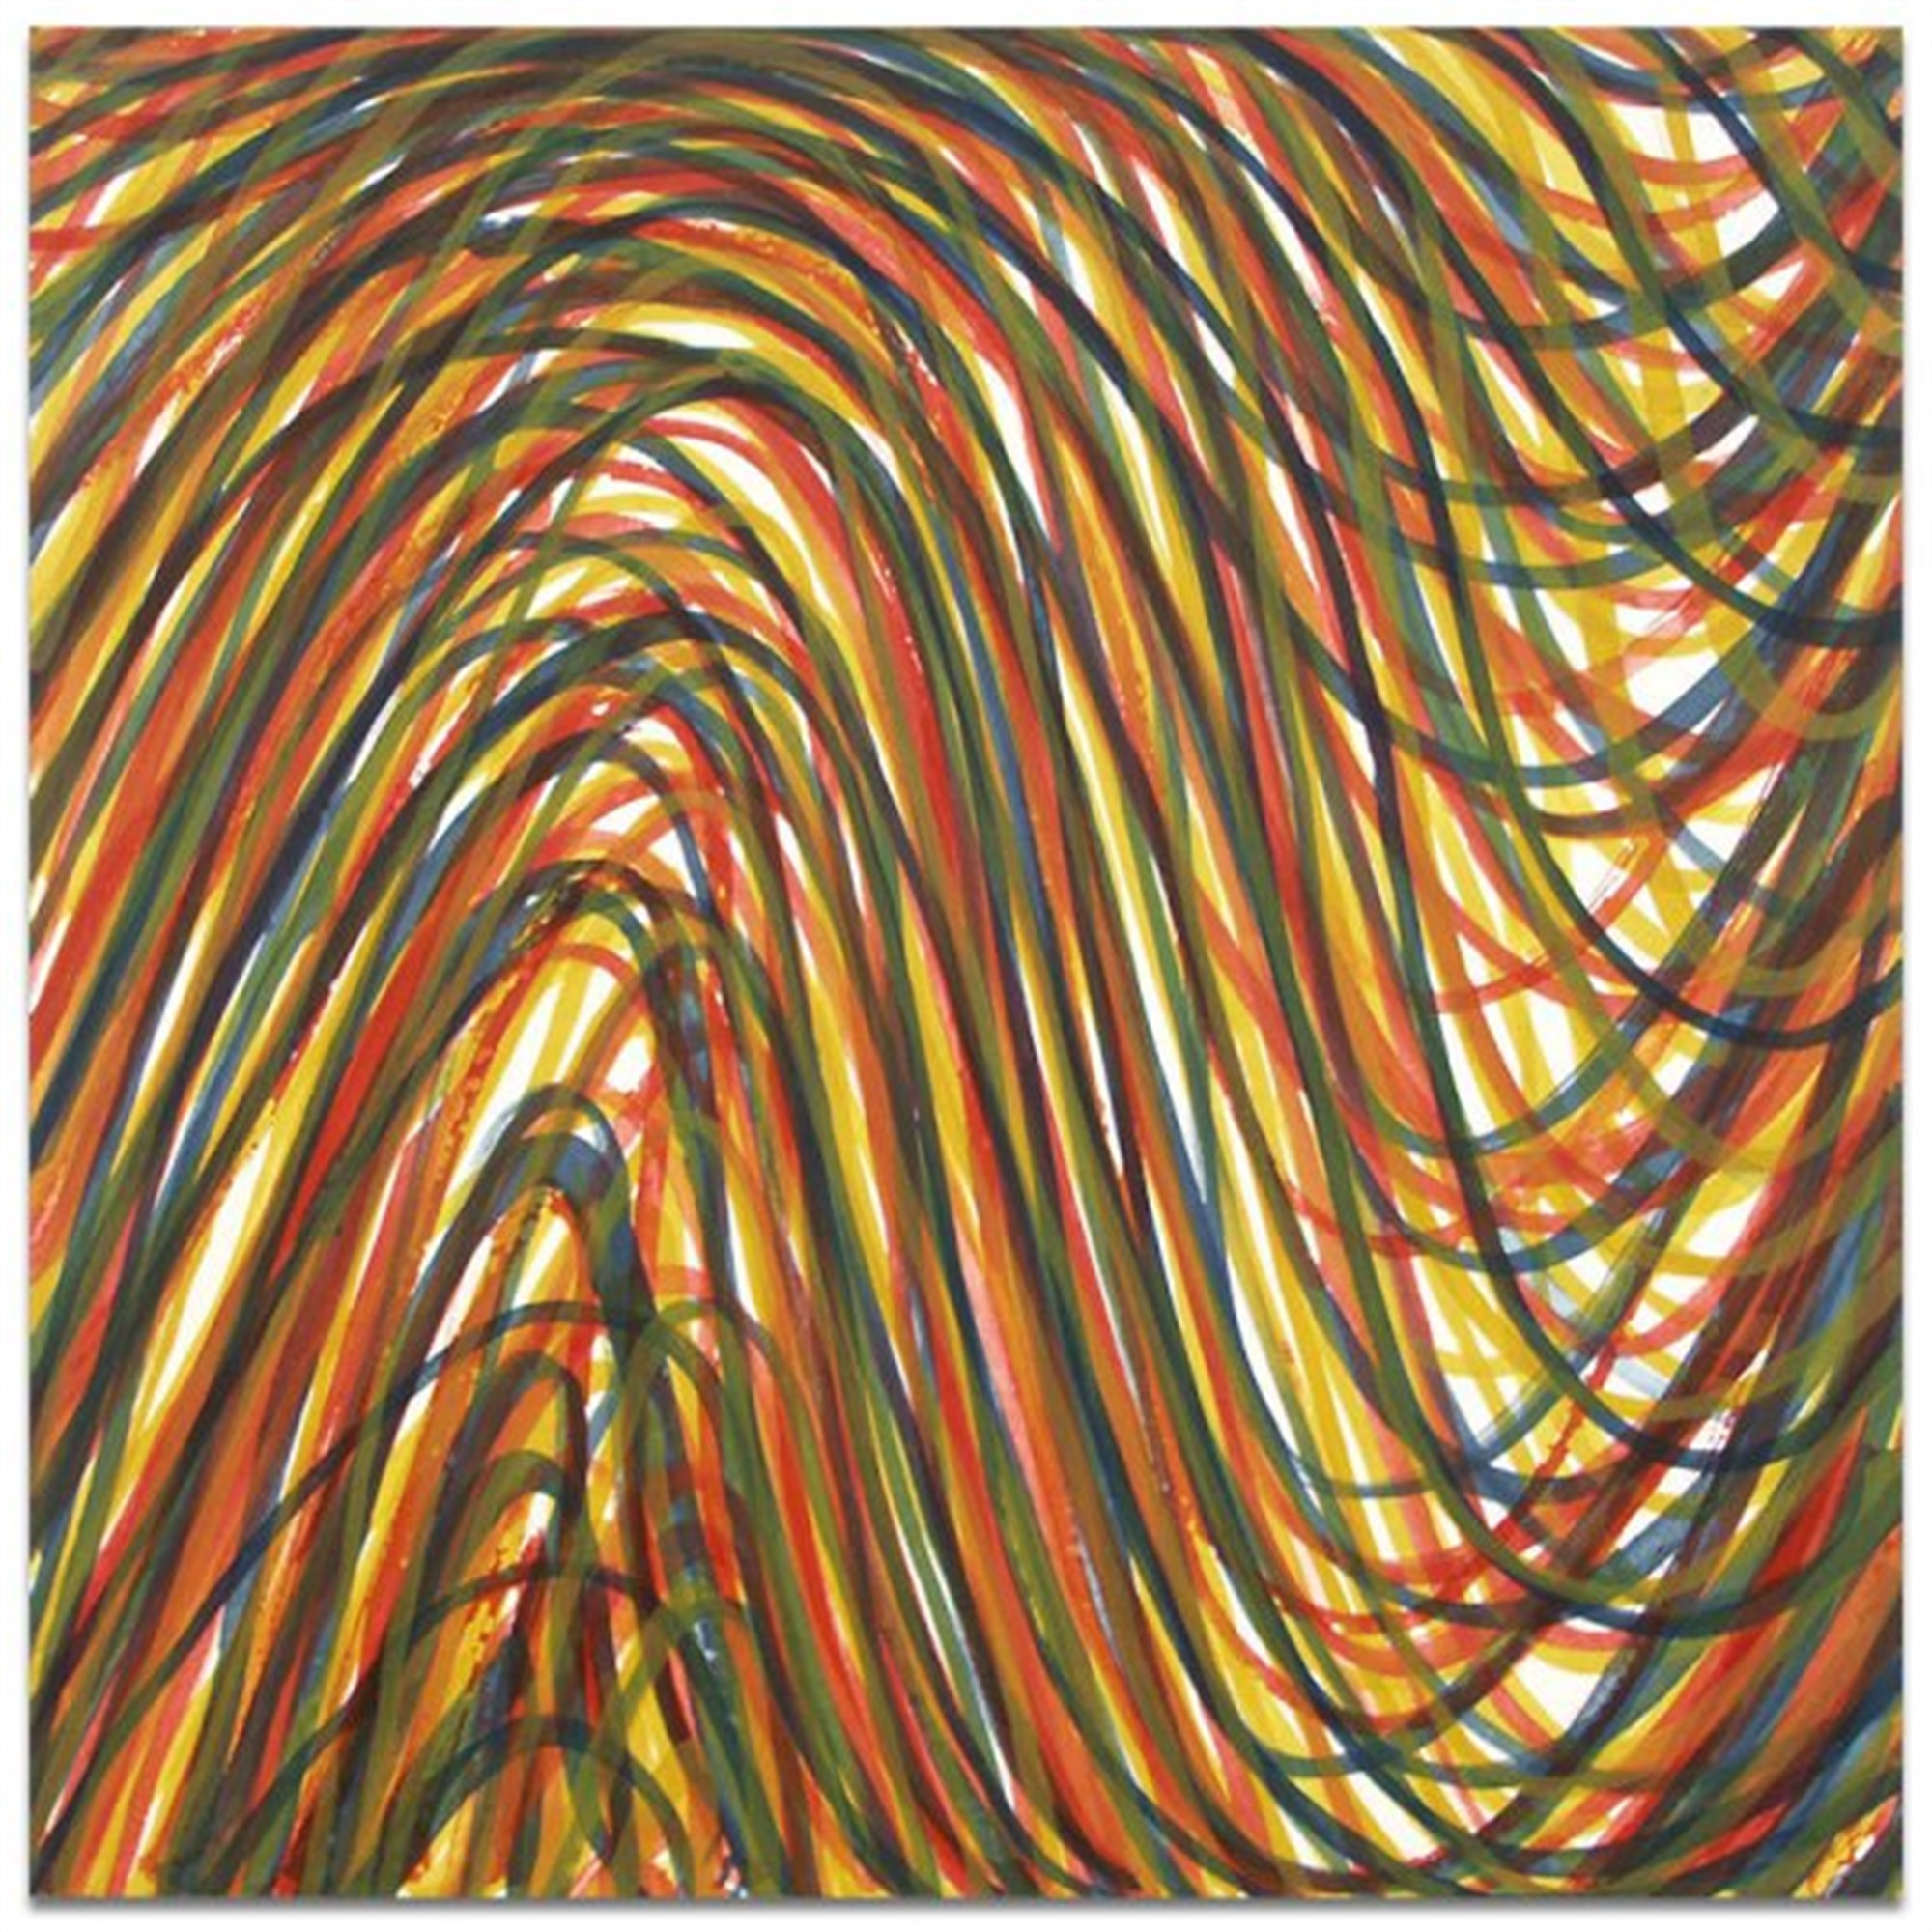 Wavy Brushstrokes Superimposed by Sol LeWitt